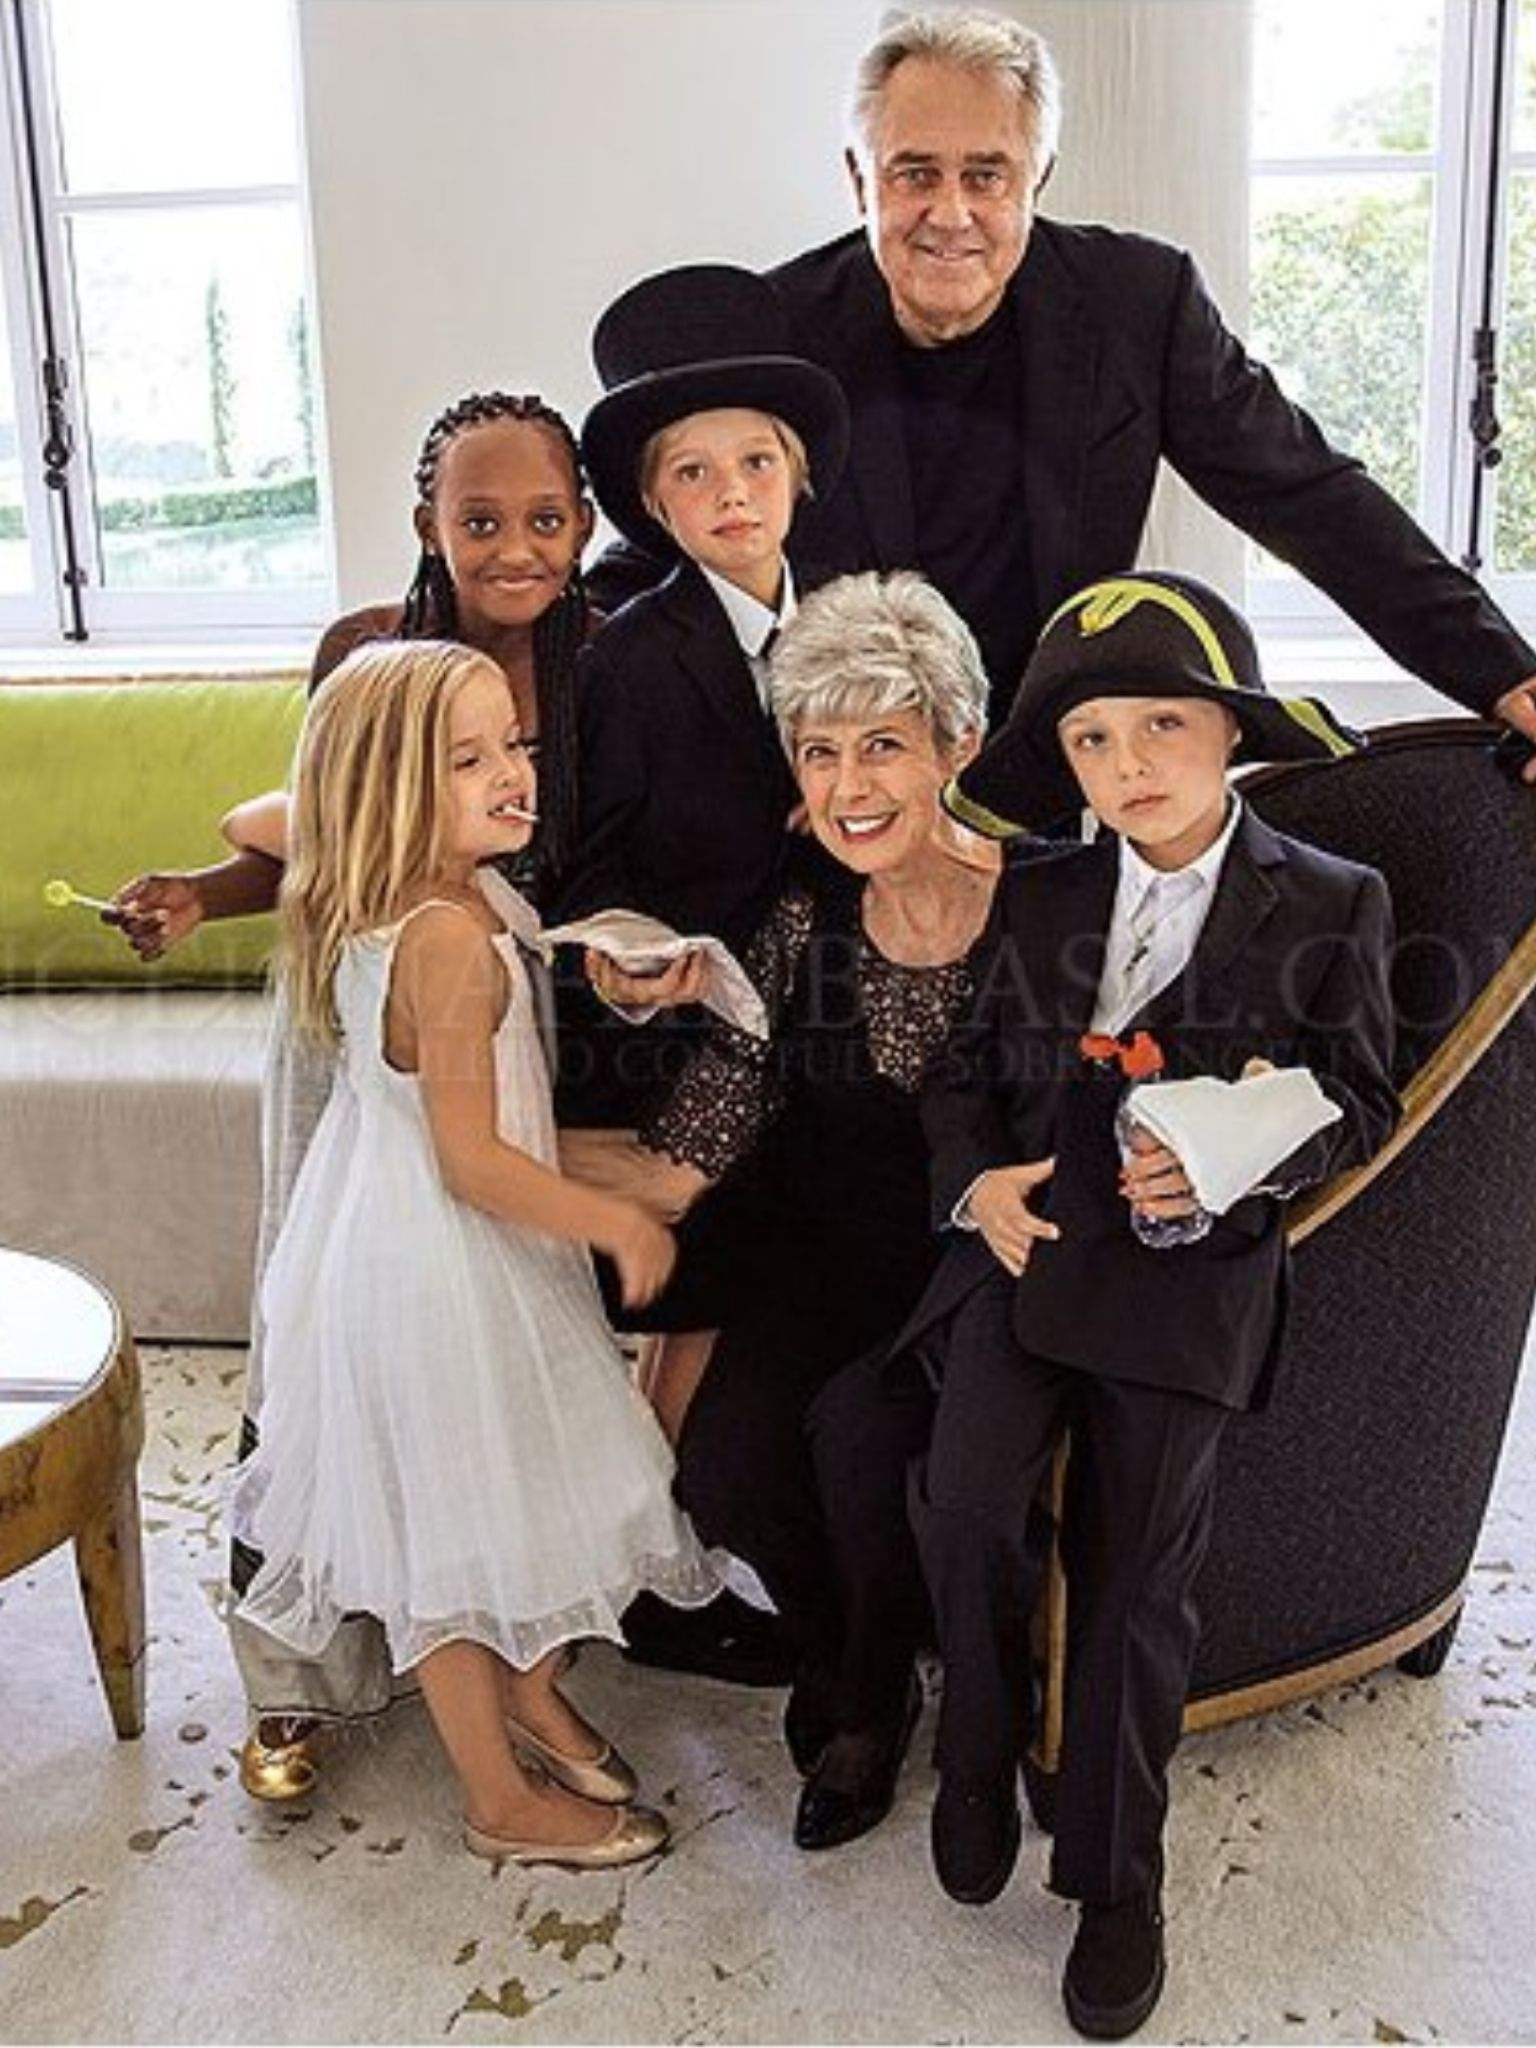 Angelina Jolie And Brad Pitt Wedding Grandpas Pitts